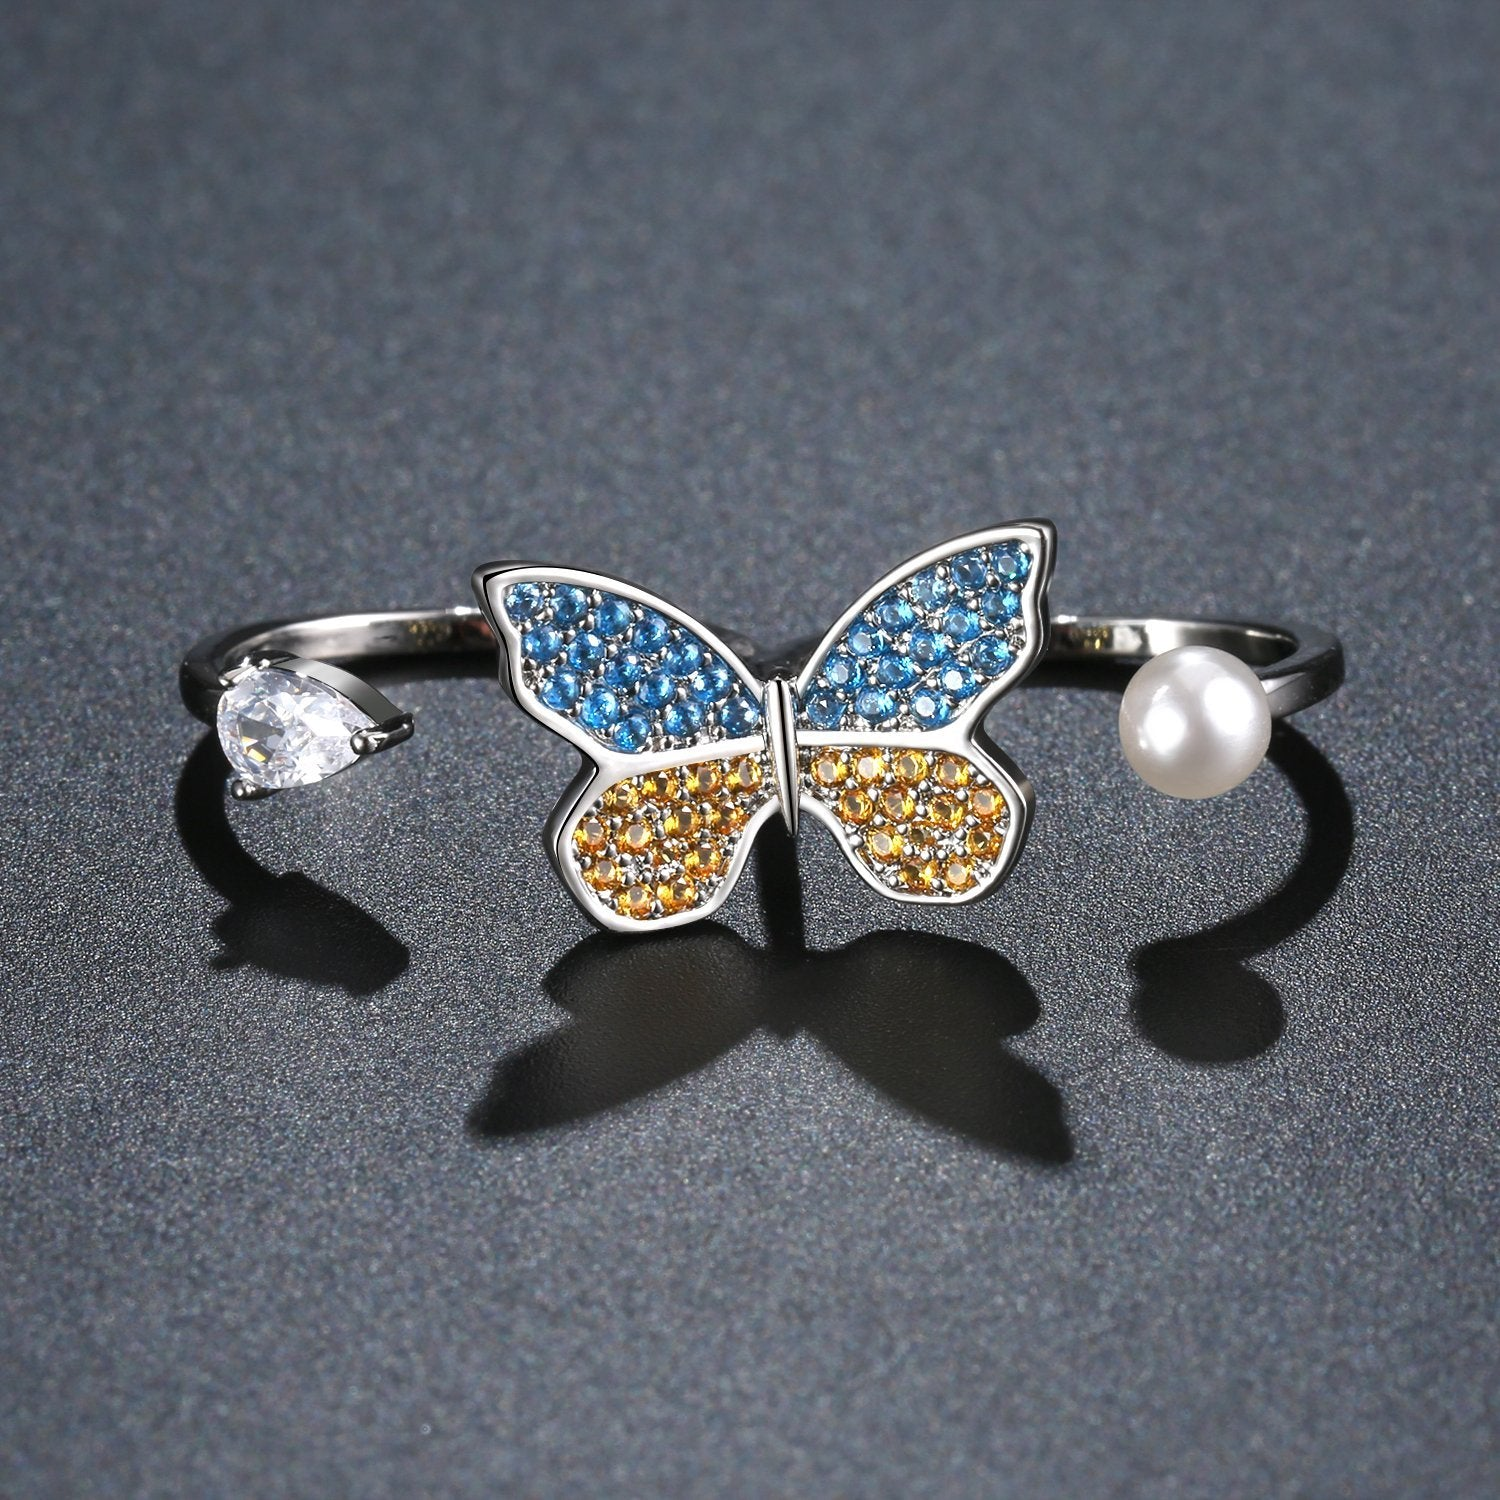 Butterfly Pearl Bridal Sets Adjustable Open Ring - KHAISTA Fashion Jewellery